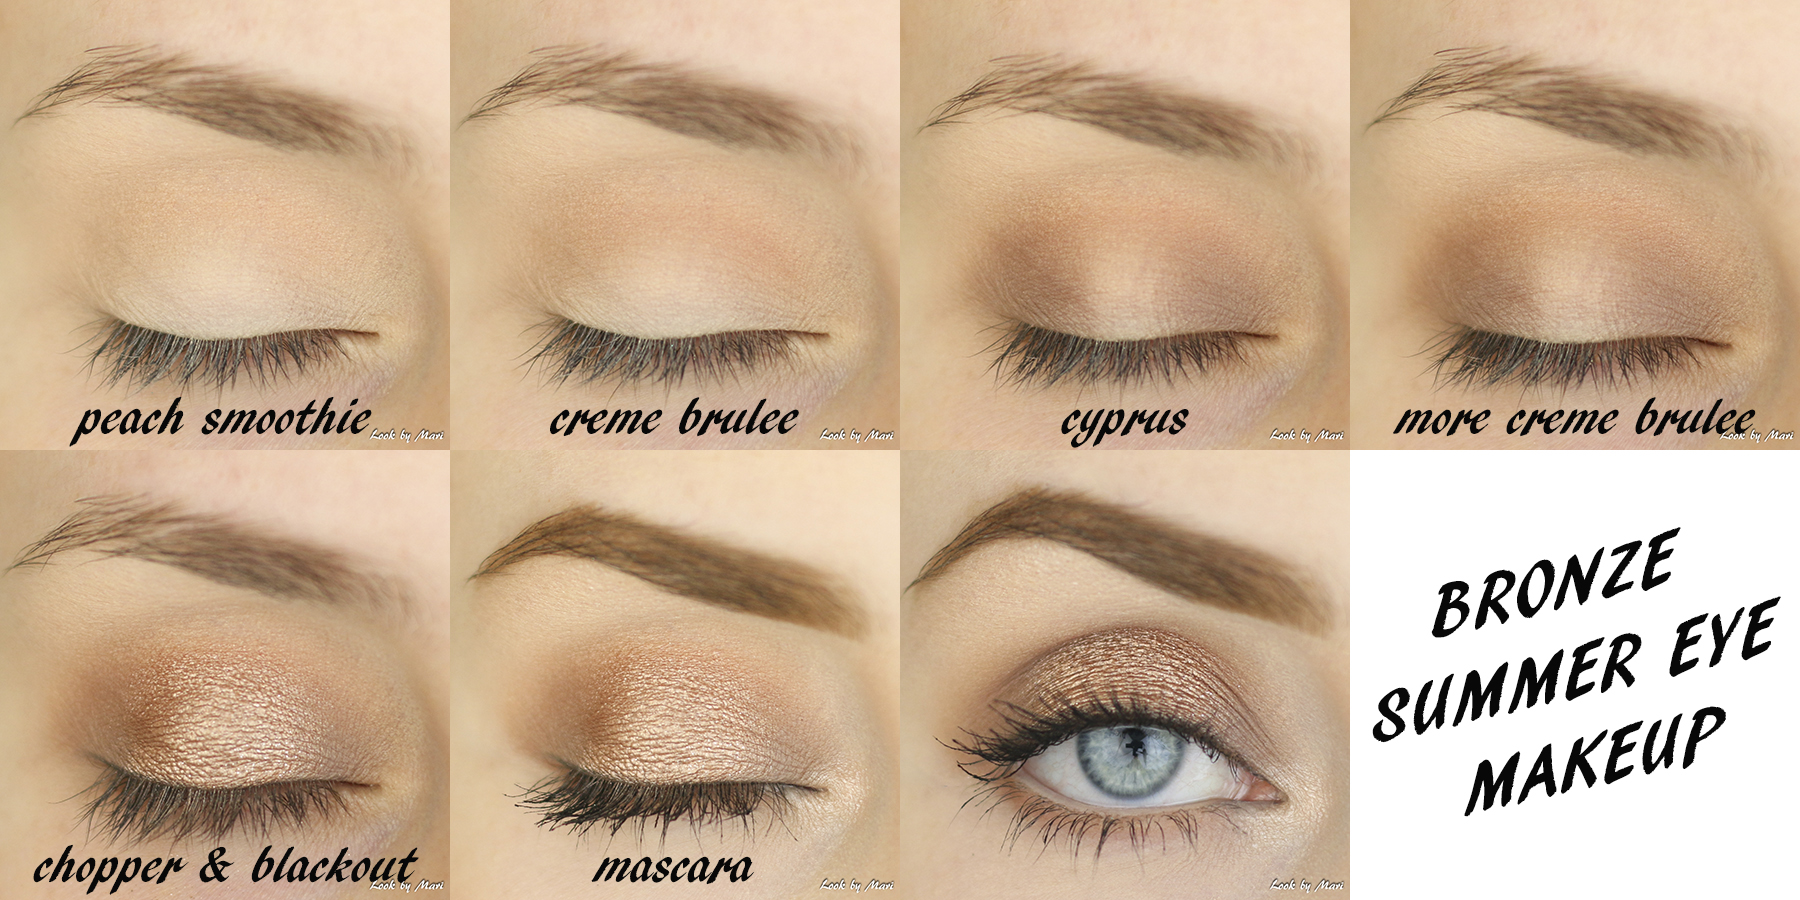 4 bronzy bronze eye makeup tutorial for beginners easy blog